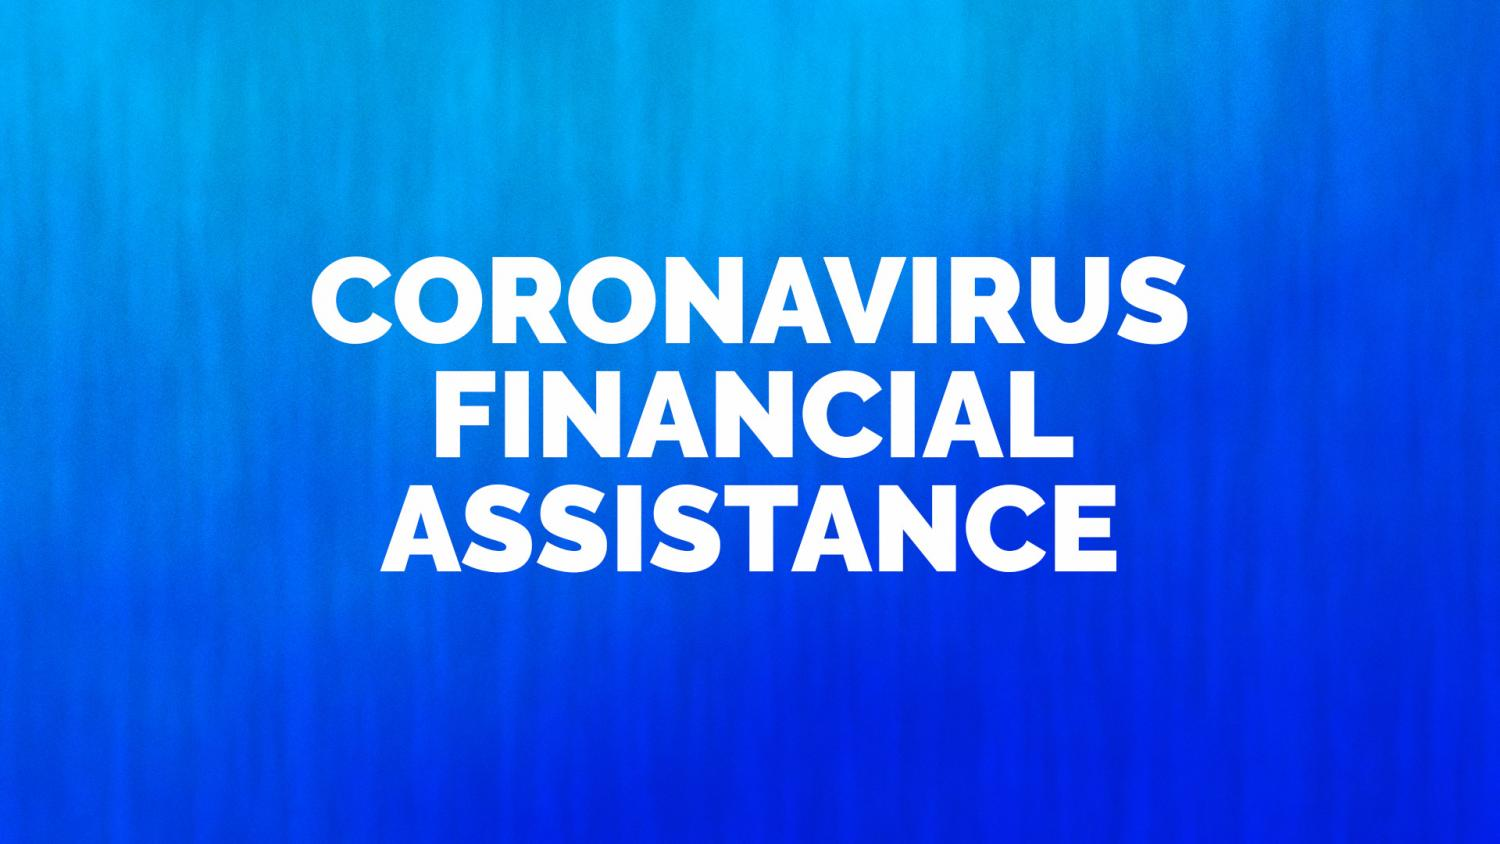 Coronavirus Financial Assistance